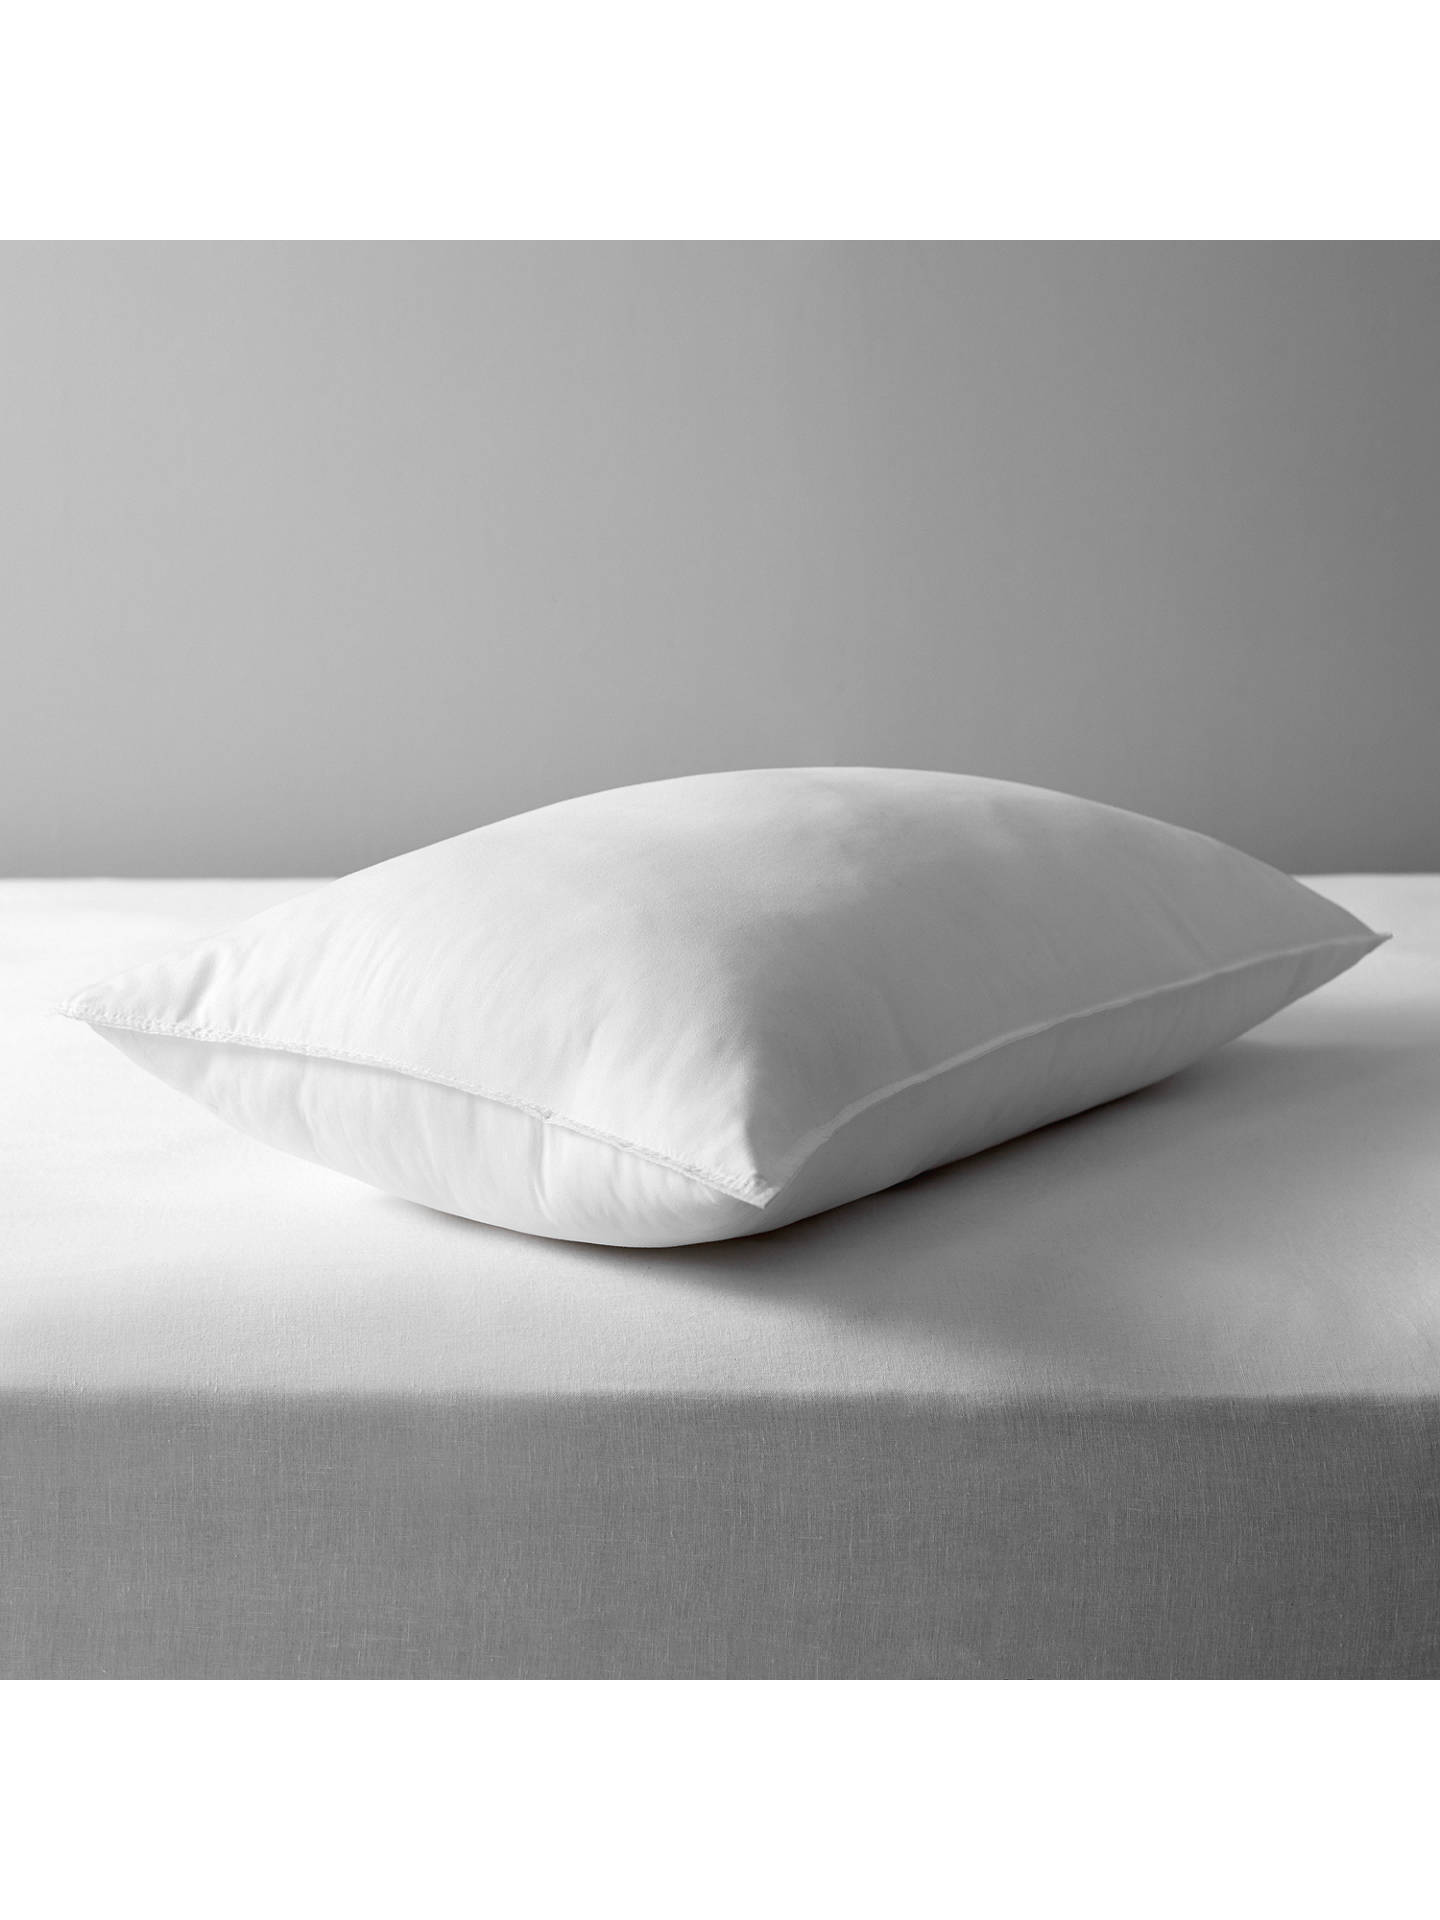 BuyJohn Lewis & Partners Synthetic Soft Touch Washable Standard Pillow, Soft/Medium Online at johnlewis.com